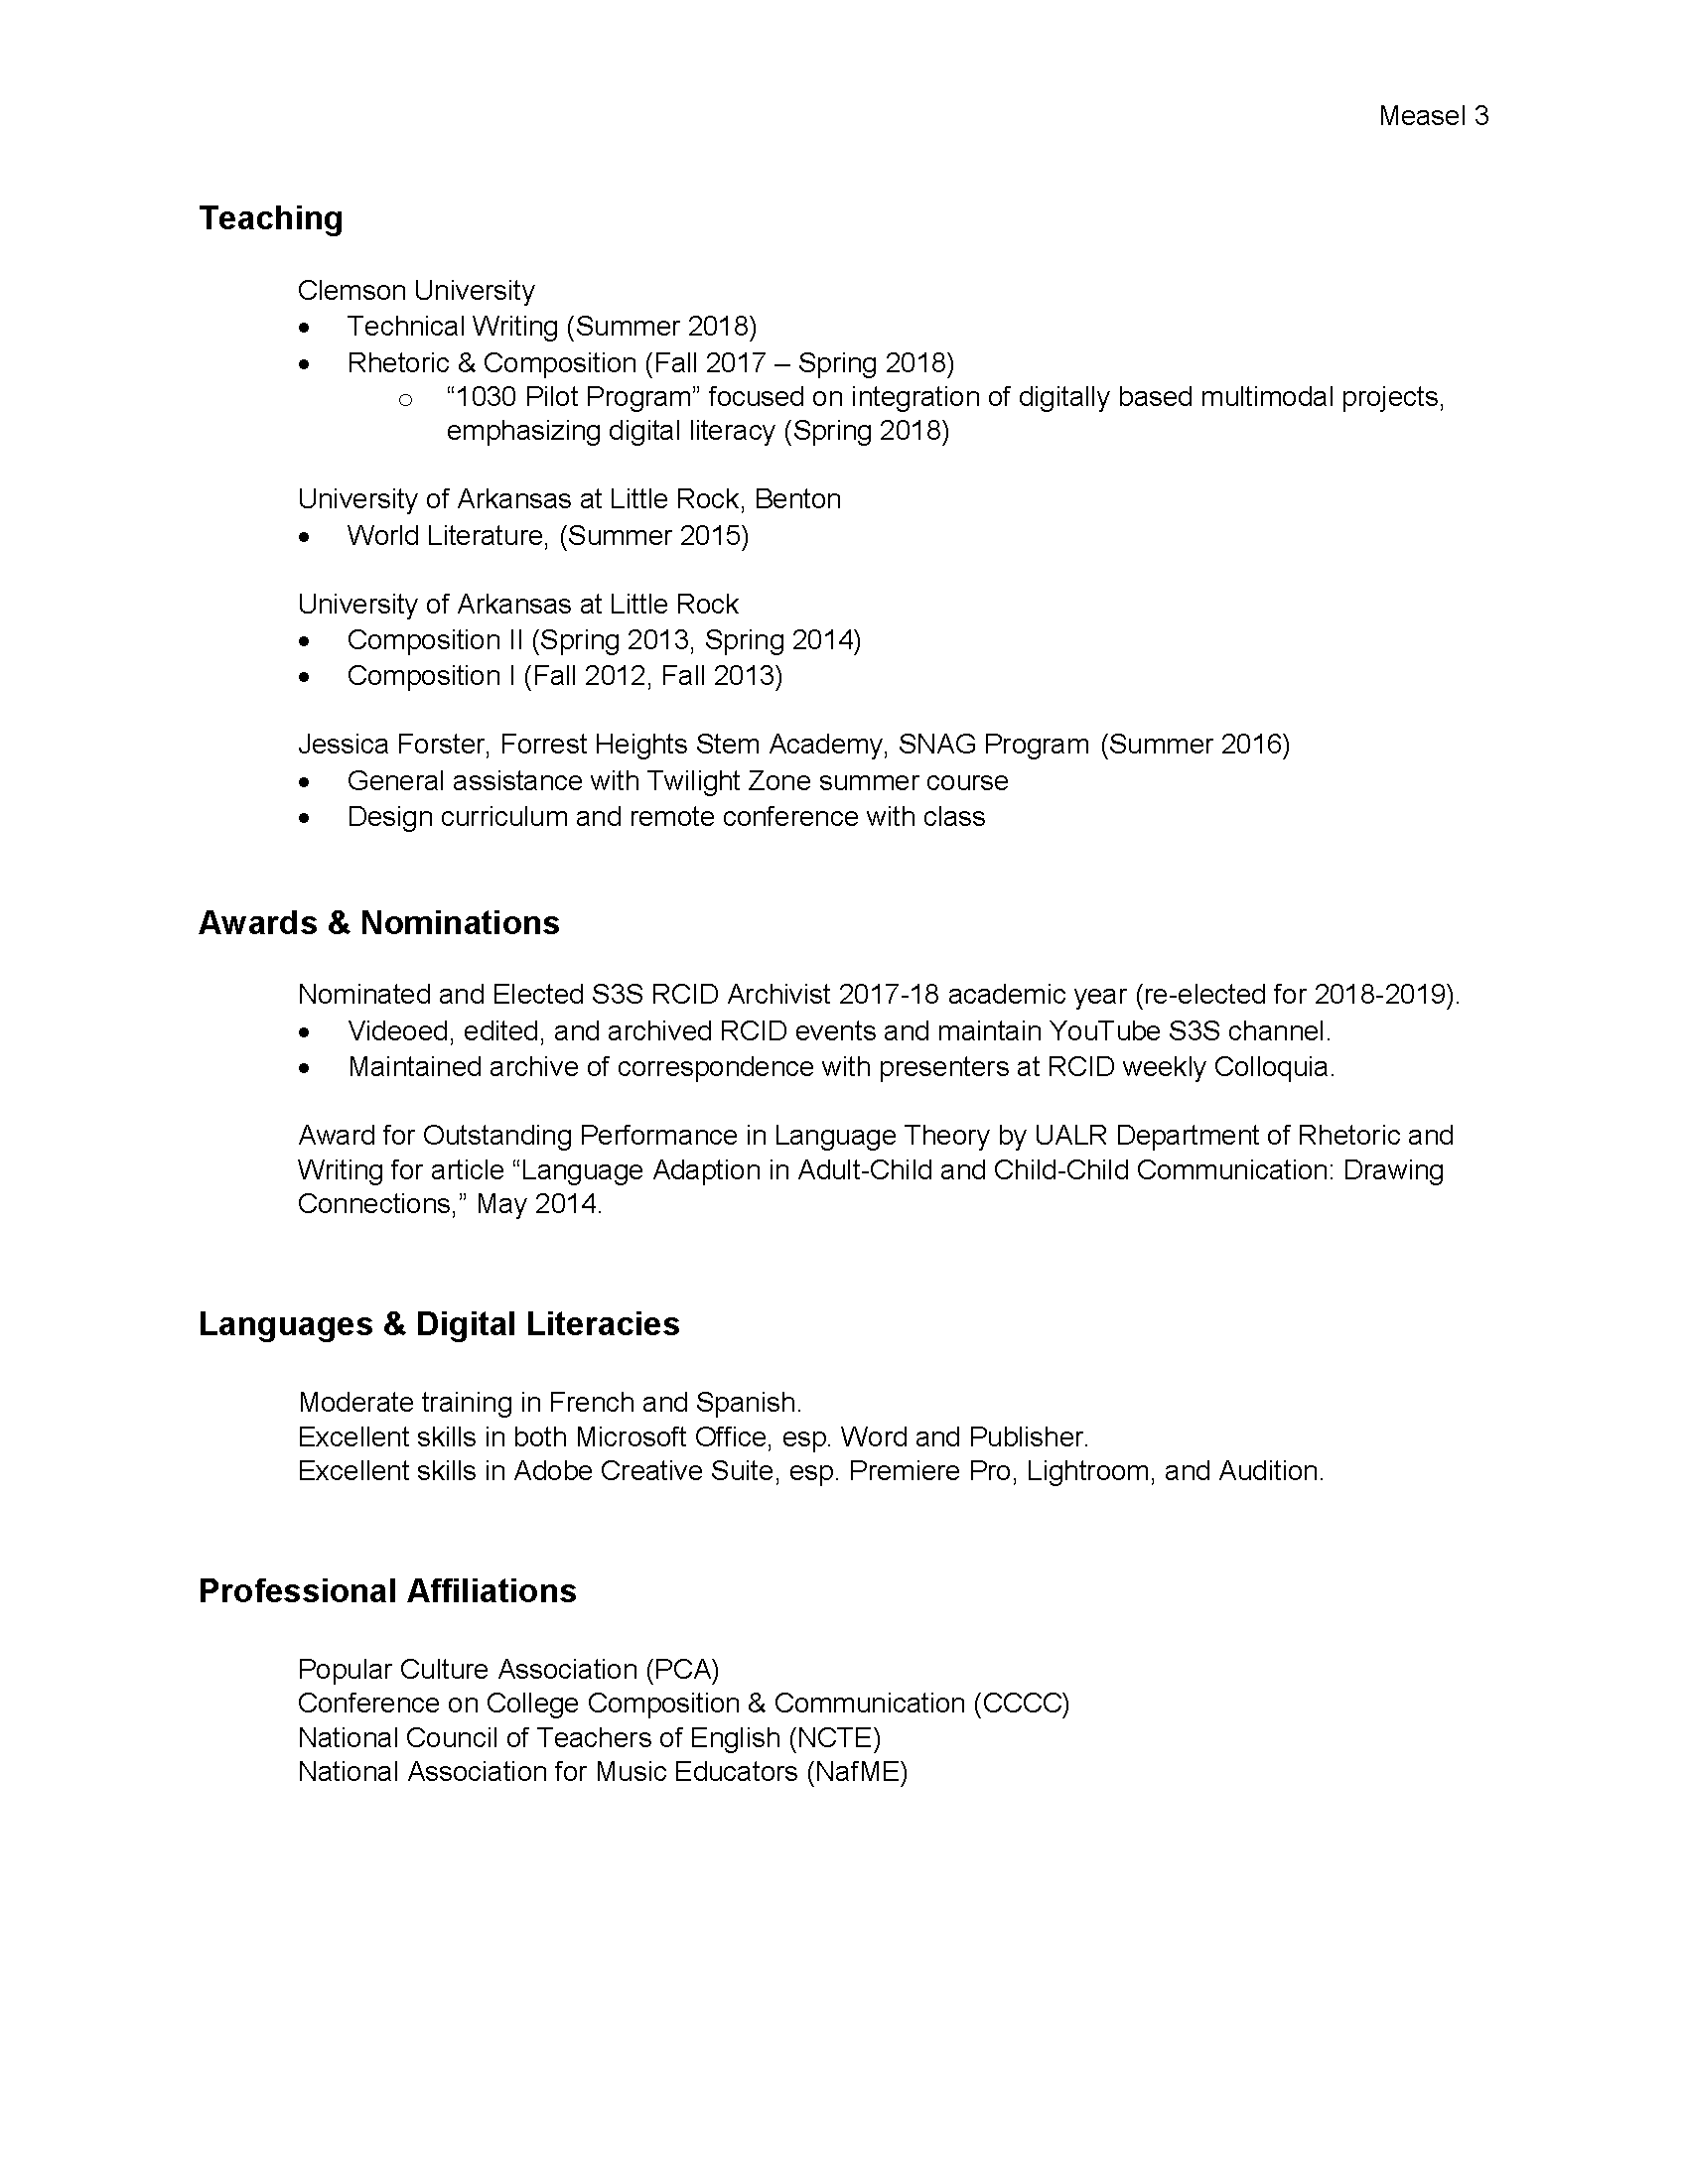 Curriculum Vitae Michael David Measel